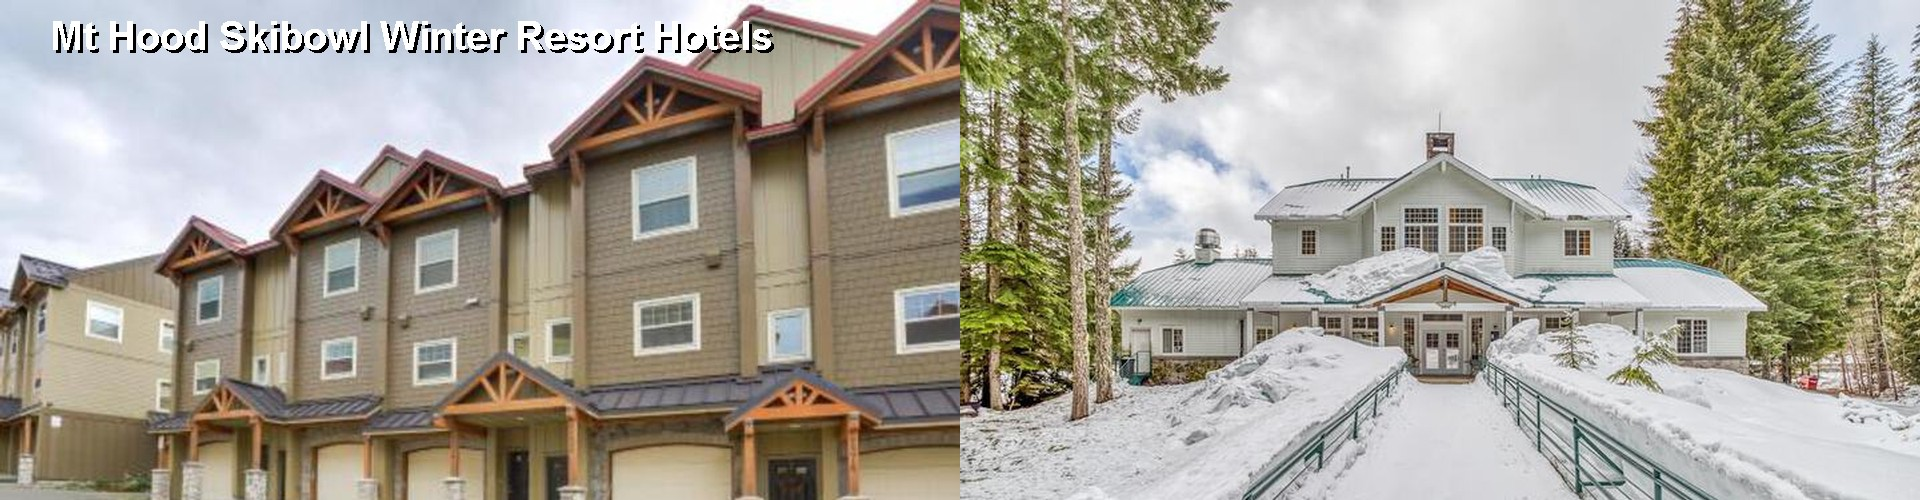 5 Best Hotels Near Mt Hood Skibowl Winter Resort